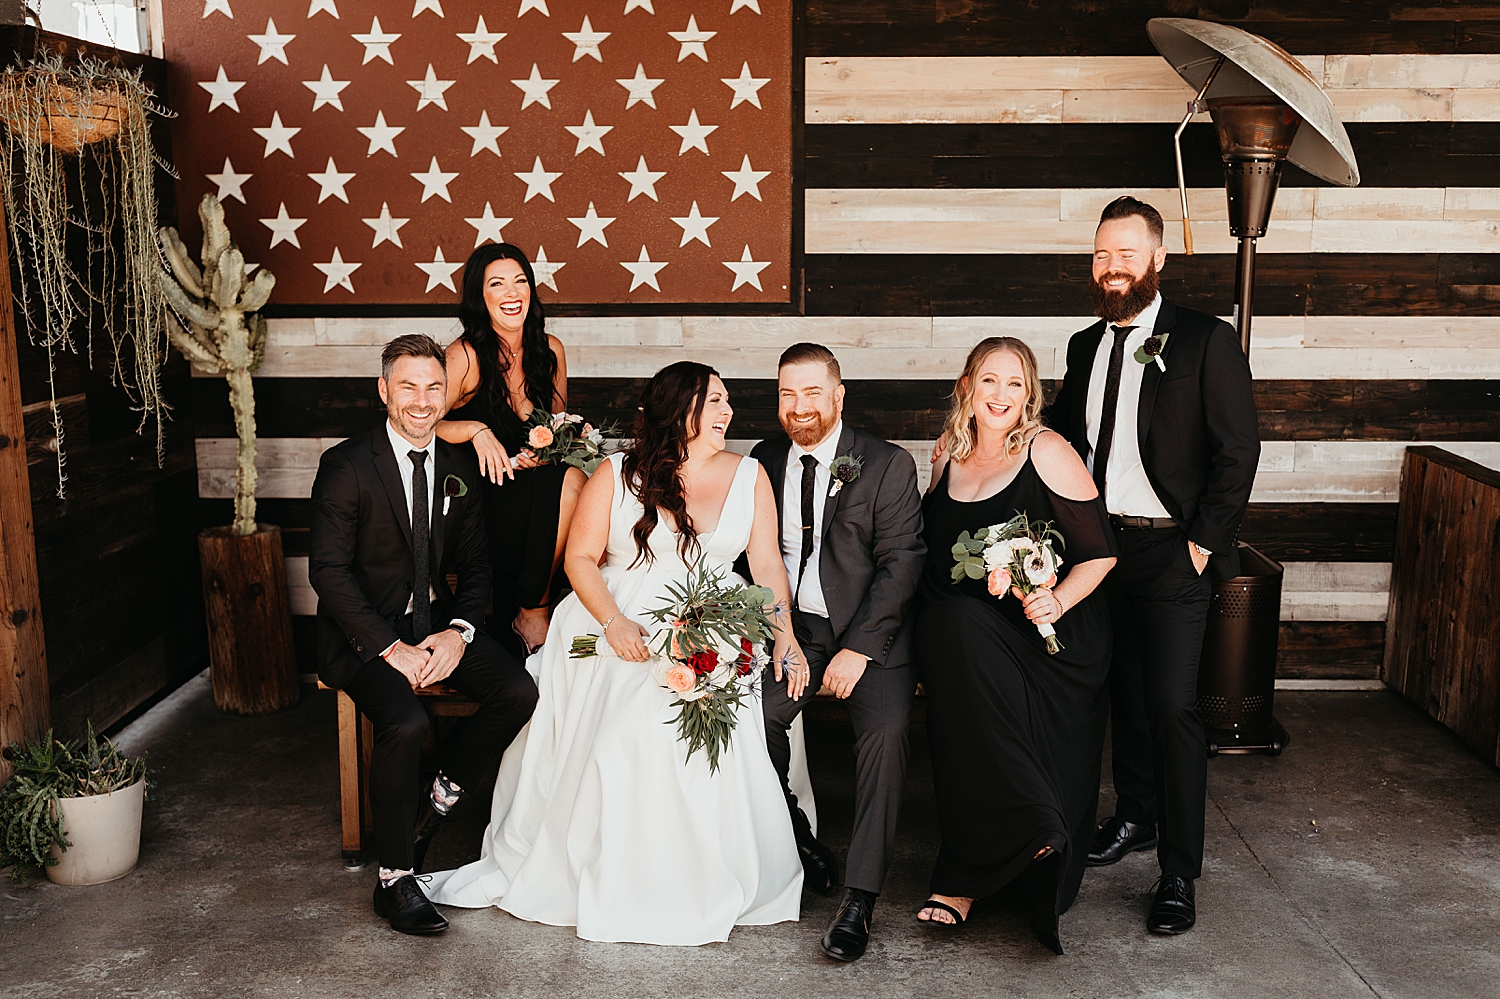 The-Wood-Shed-Booze-Brothers-Wedding-60.jpg